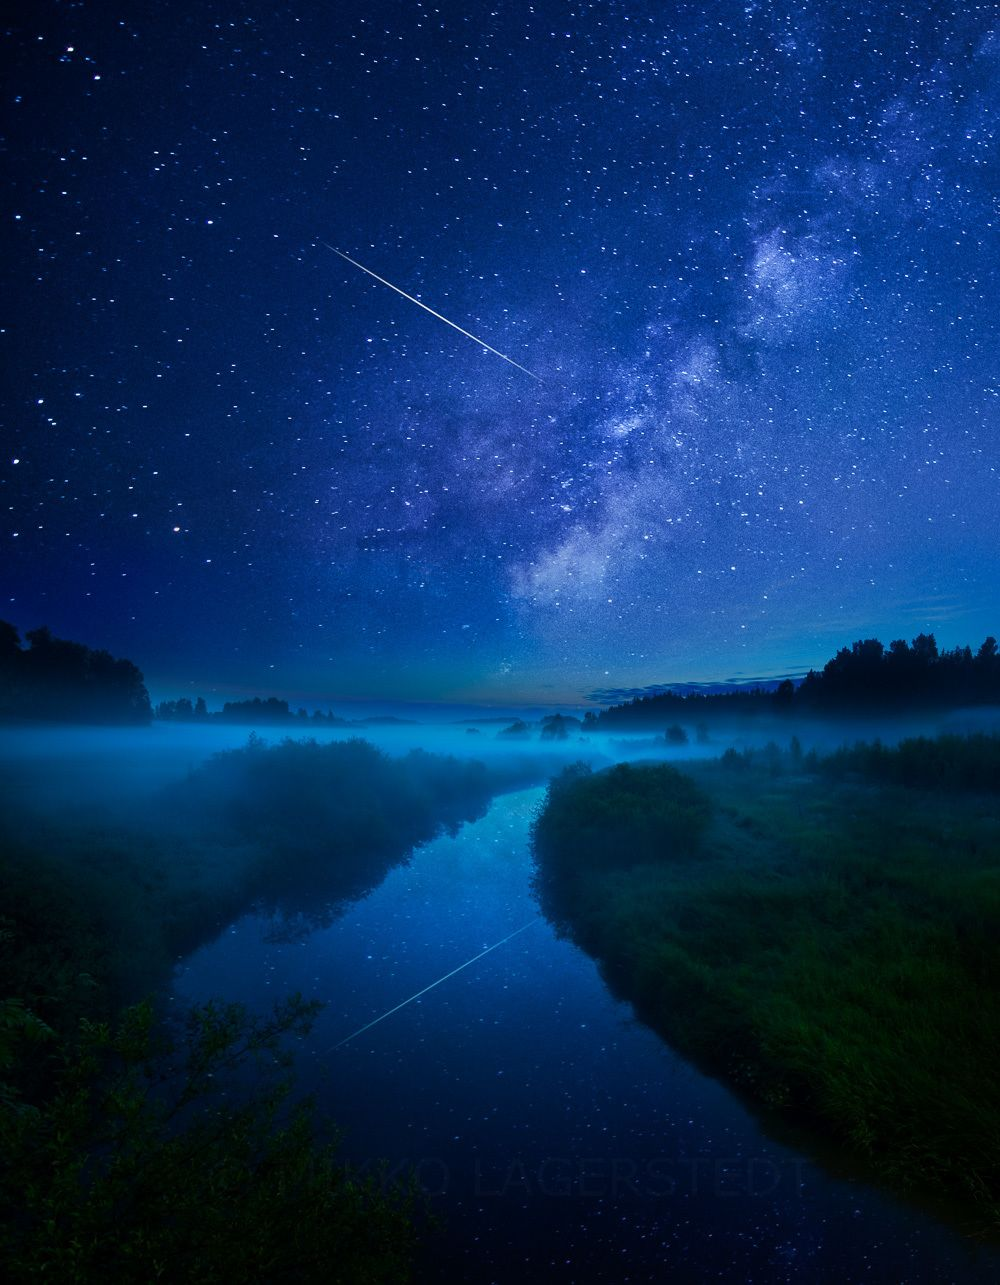 Night River By Mikko Lagerstedt Night Skies Landscape Photography Breathtaking Photography